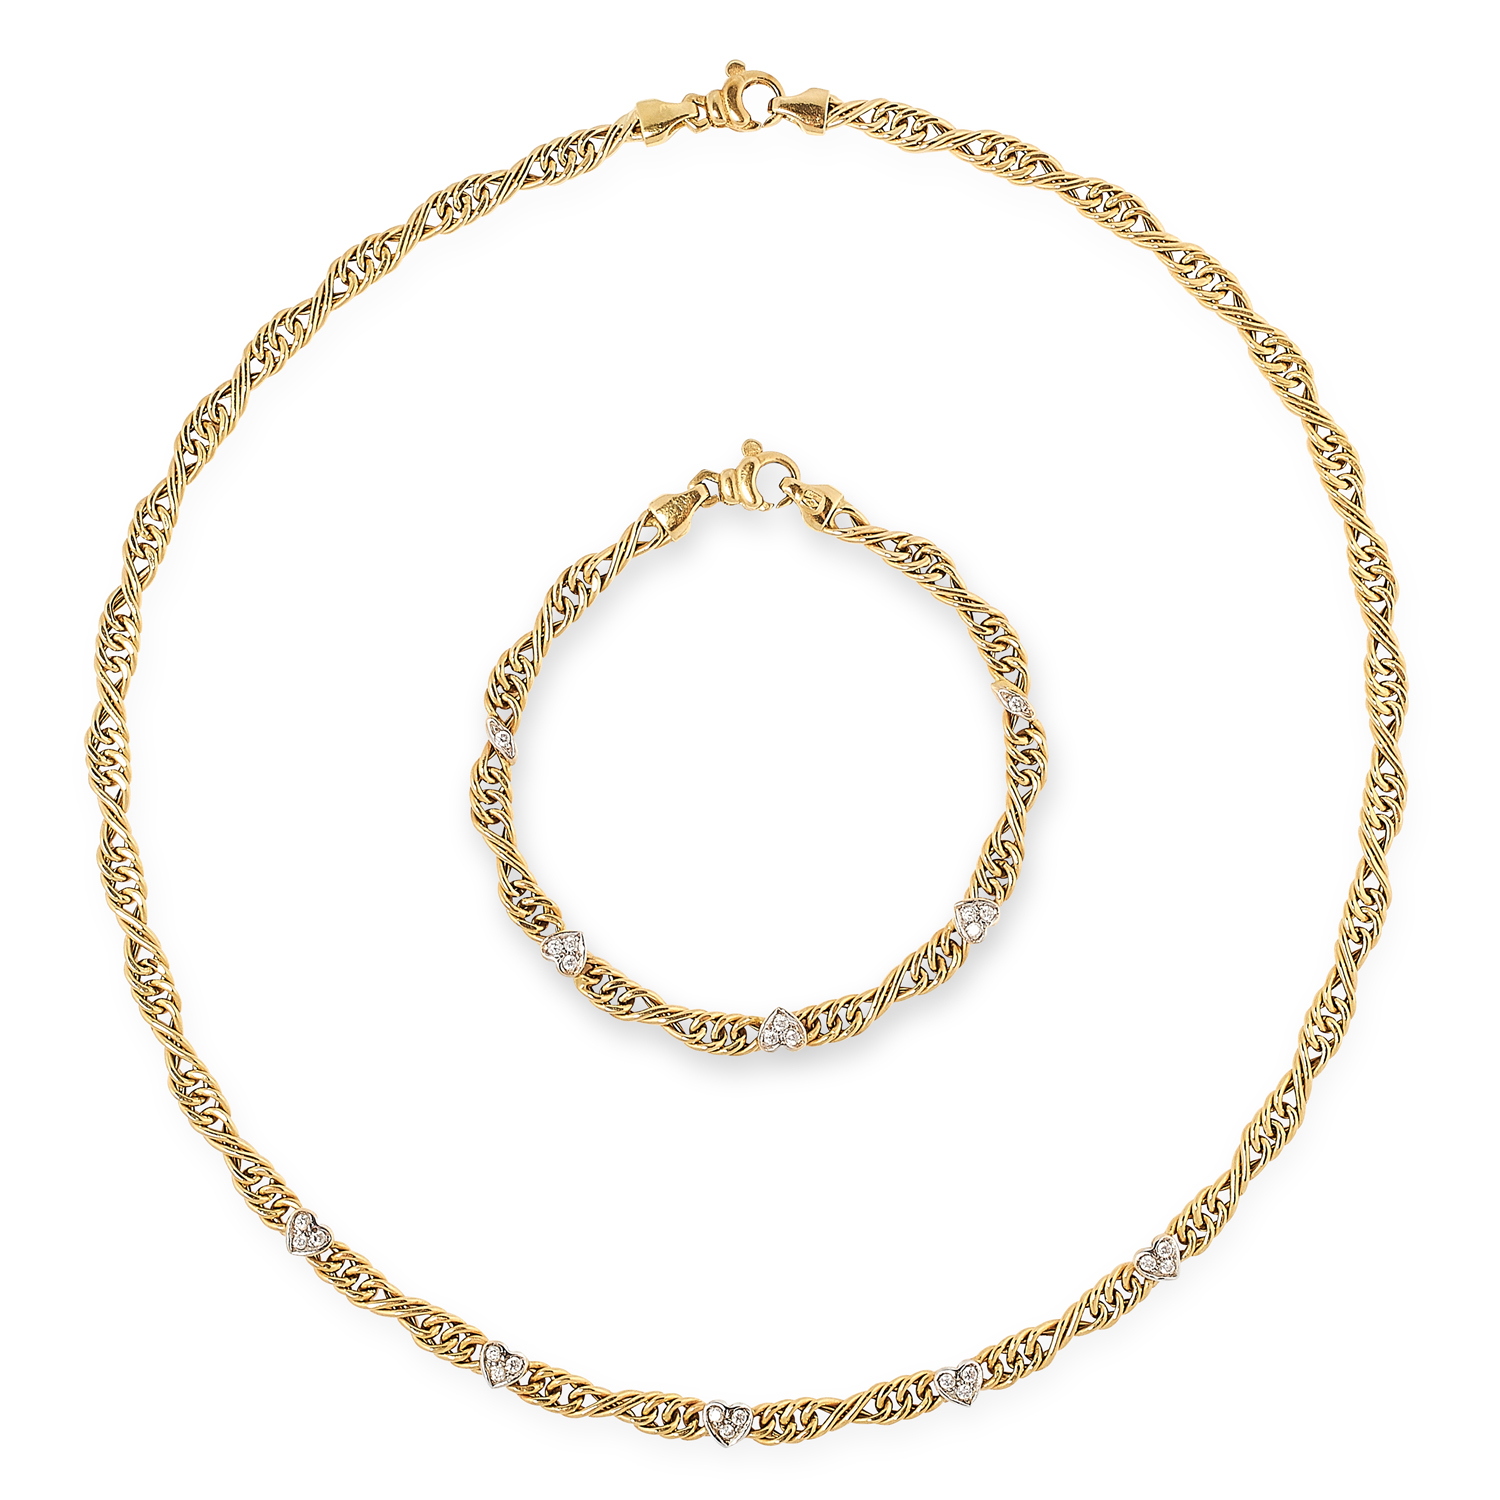 A DIAMOND FANCY LINK NECKLACE AND BRACELET SET in yellow gold, comprising of fancy links, set with